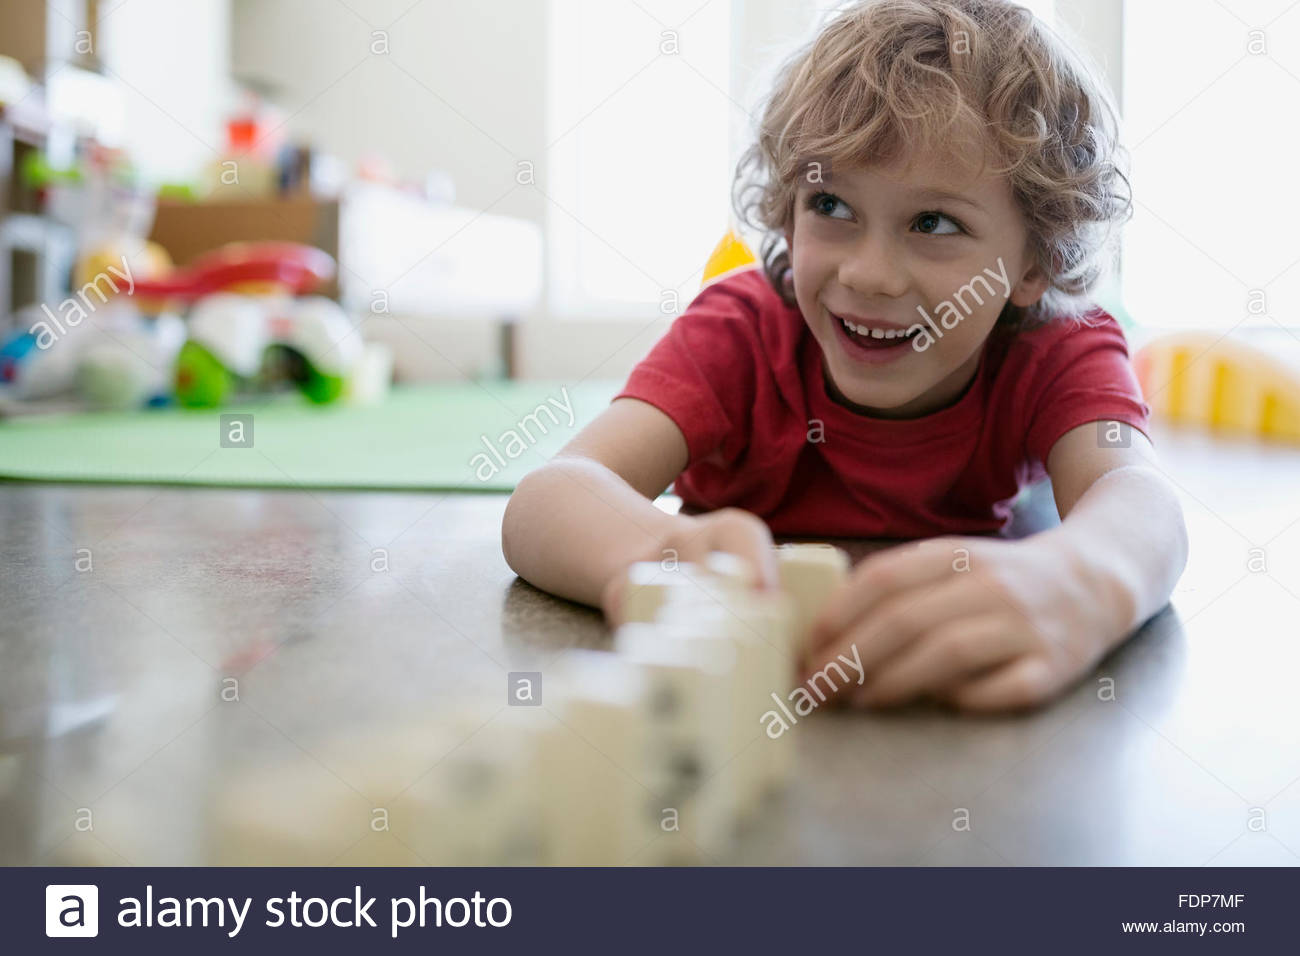 Smiling boy playing avec dominos sur marbre Photo Stock